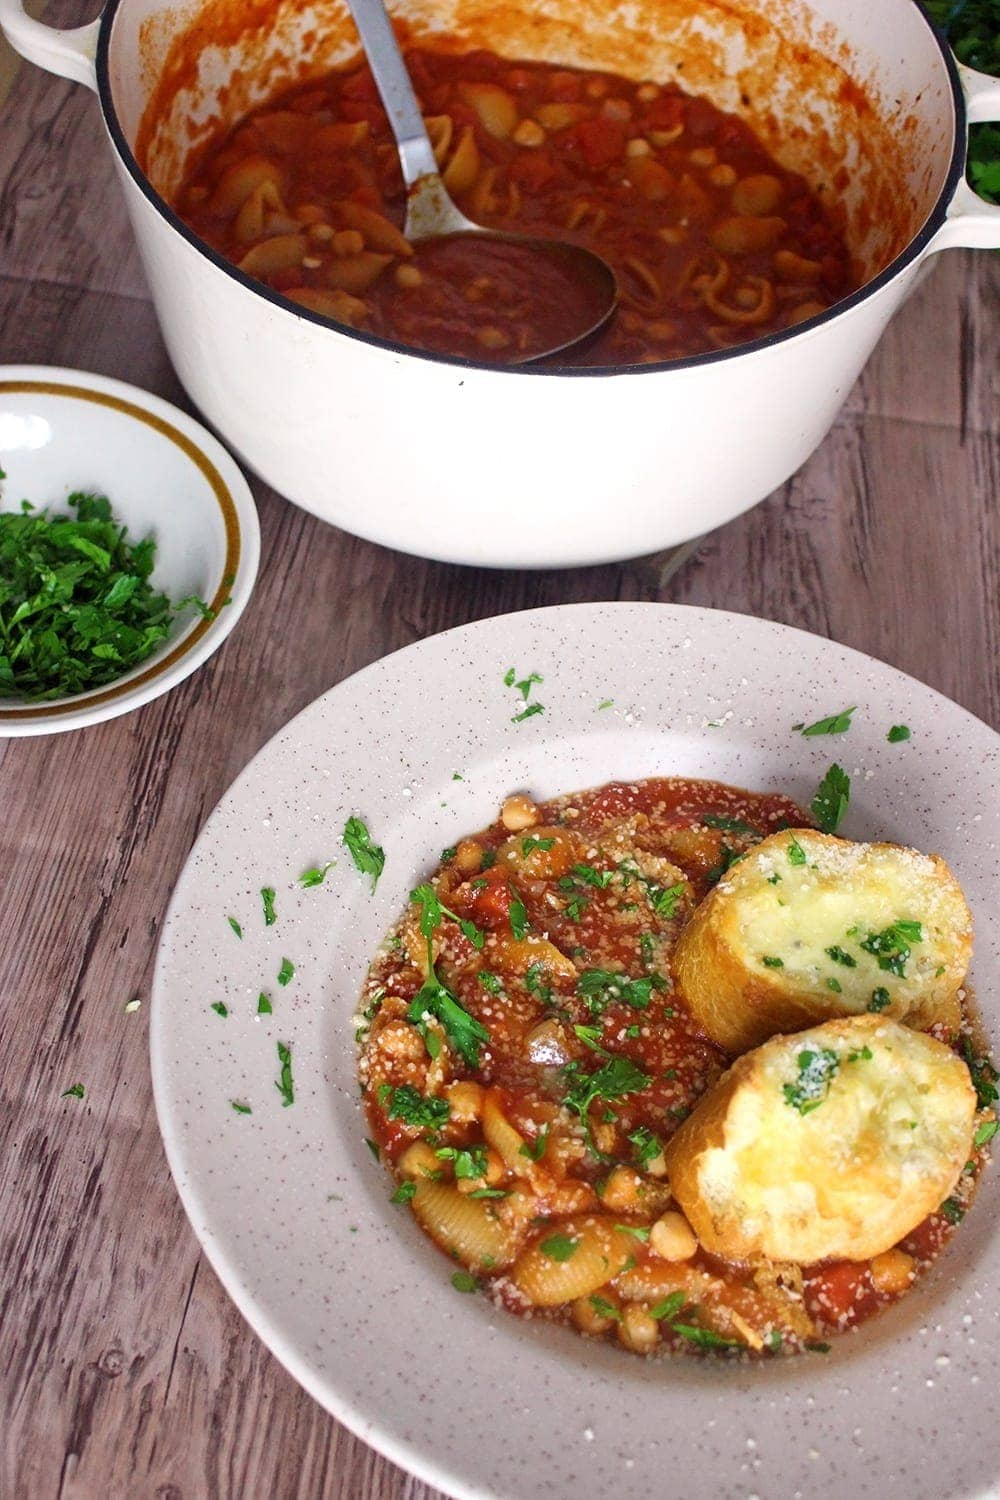 This pasta & chickpea soup is a filling dinner especially topped with these incredible cheesy toasts. Add a sprinkling of parmesan for a burst of flavour!